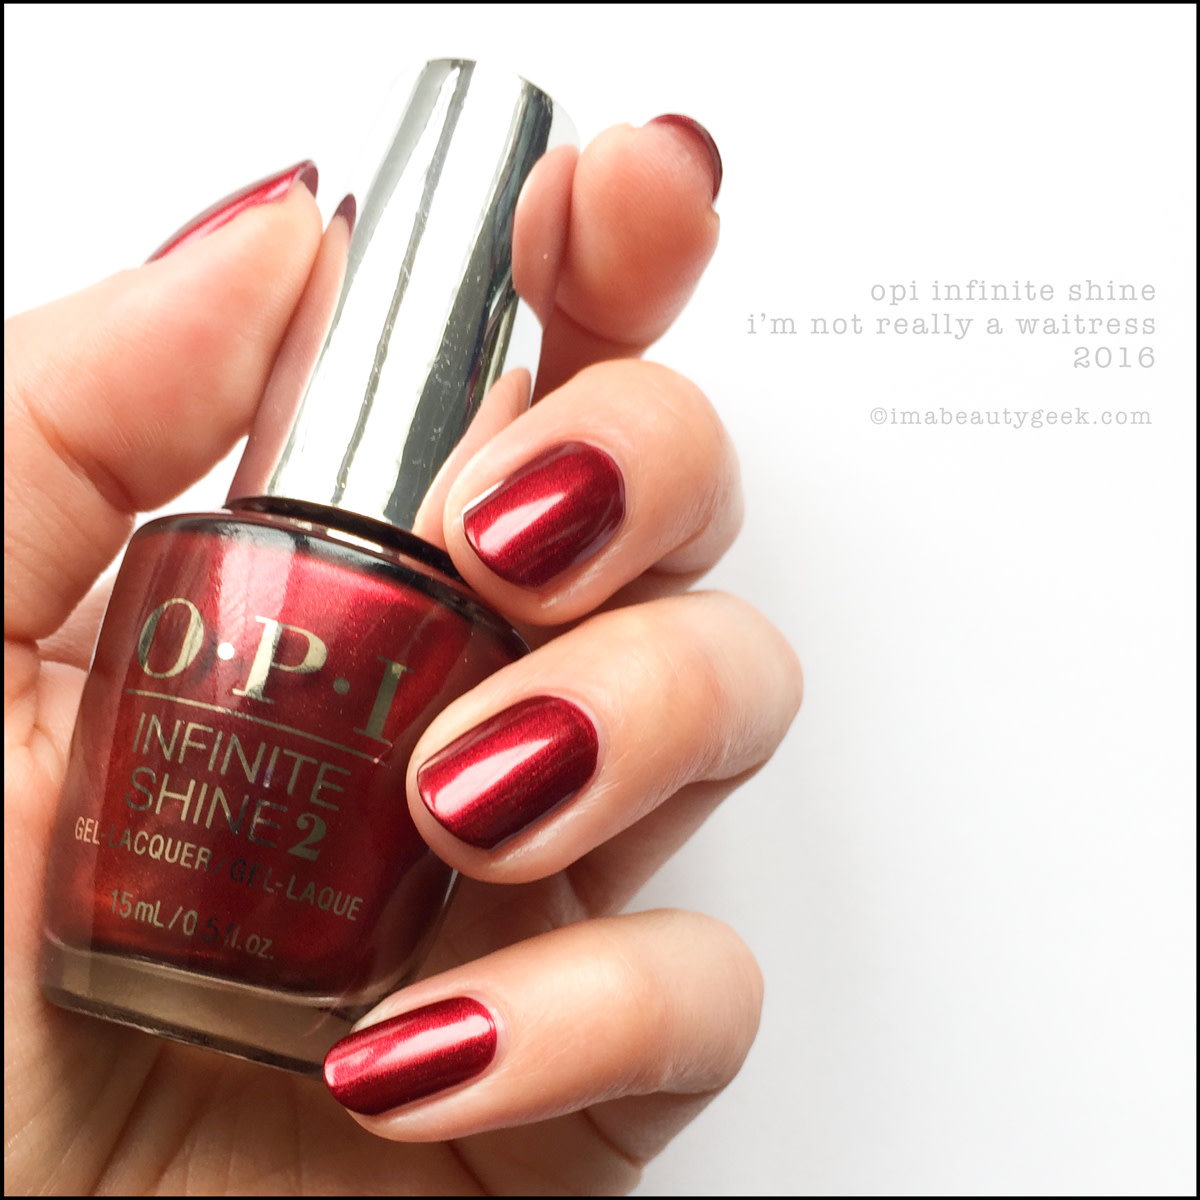 OPI Im Not Really a Waitress Infinite Shine_OPI IS Iconic Collection 2016